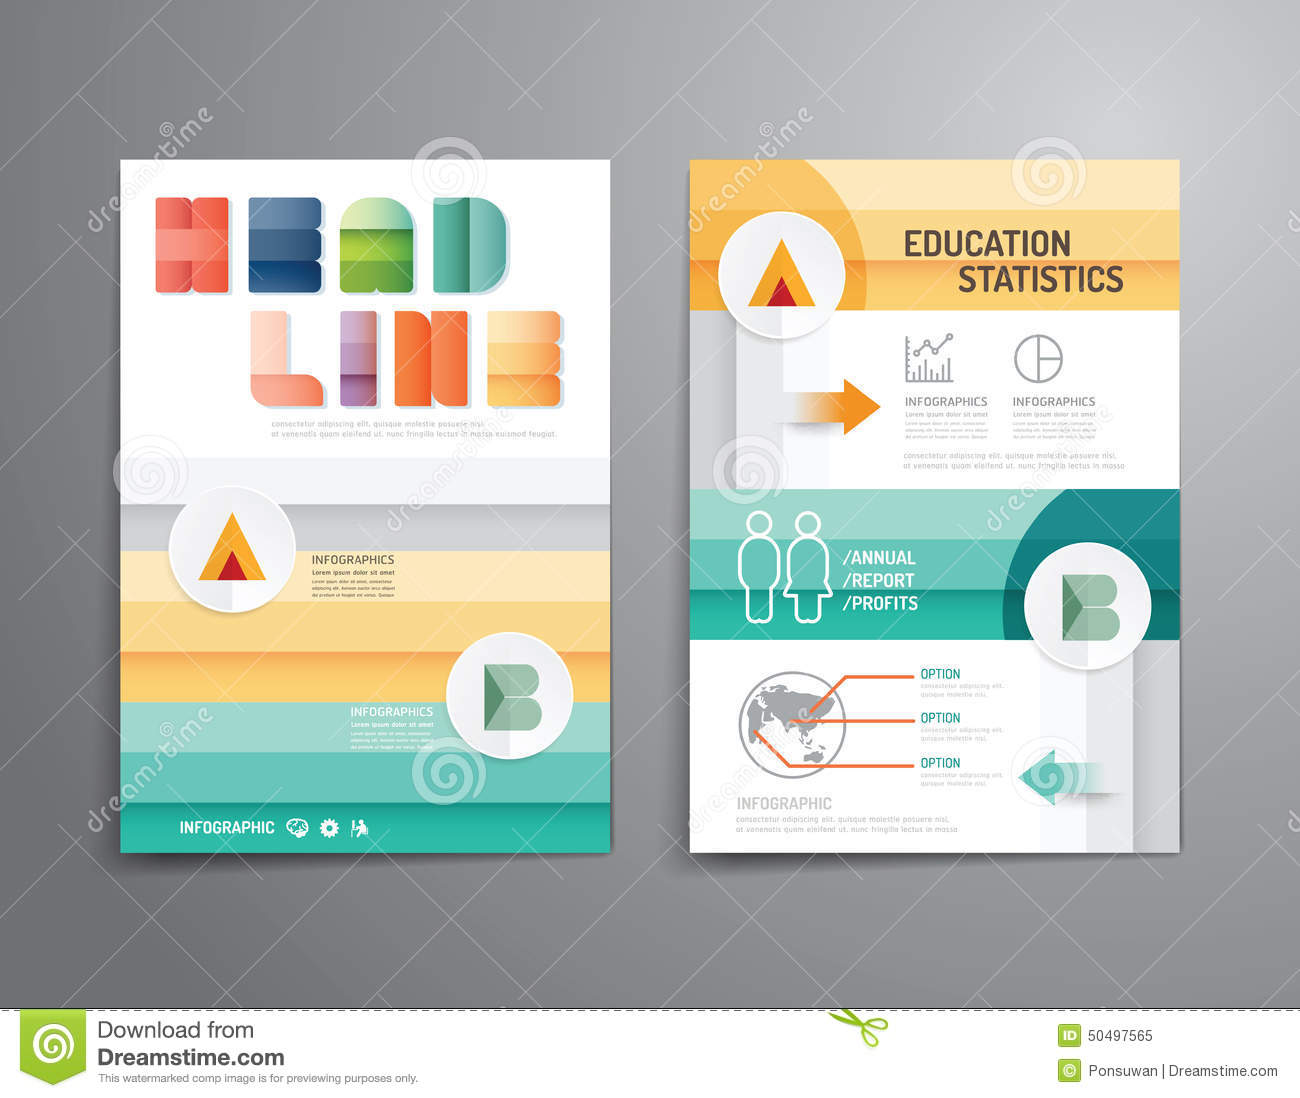 Poster design template free - Free Poster Design Template